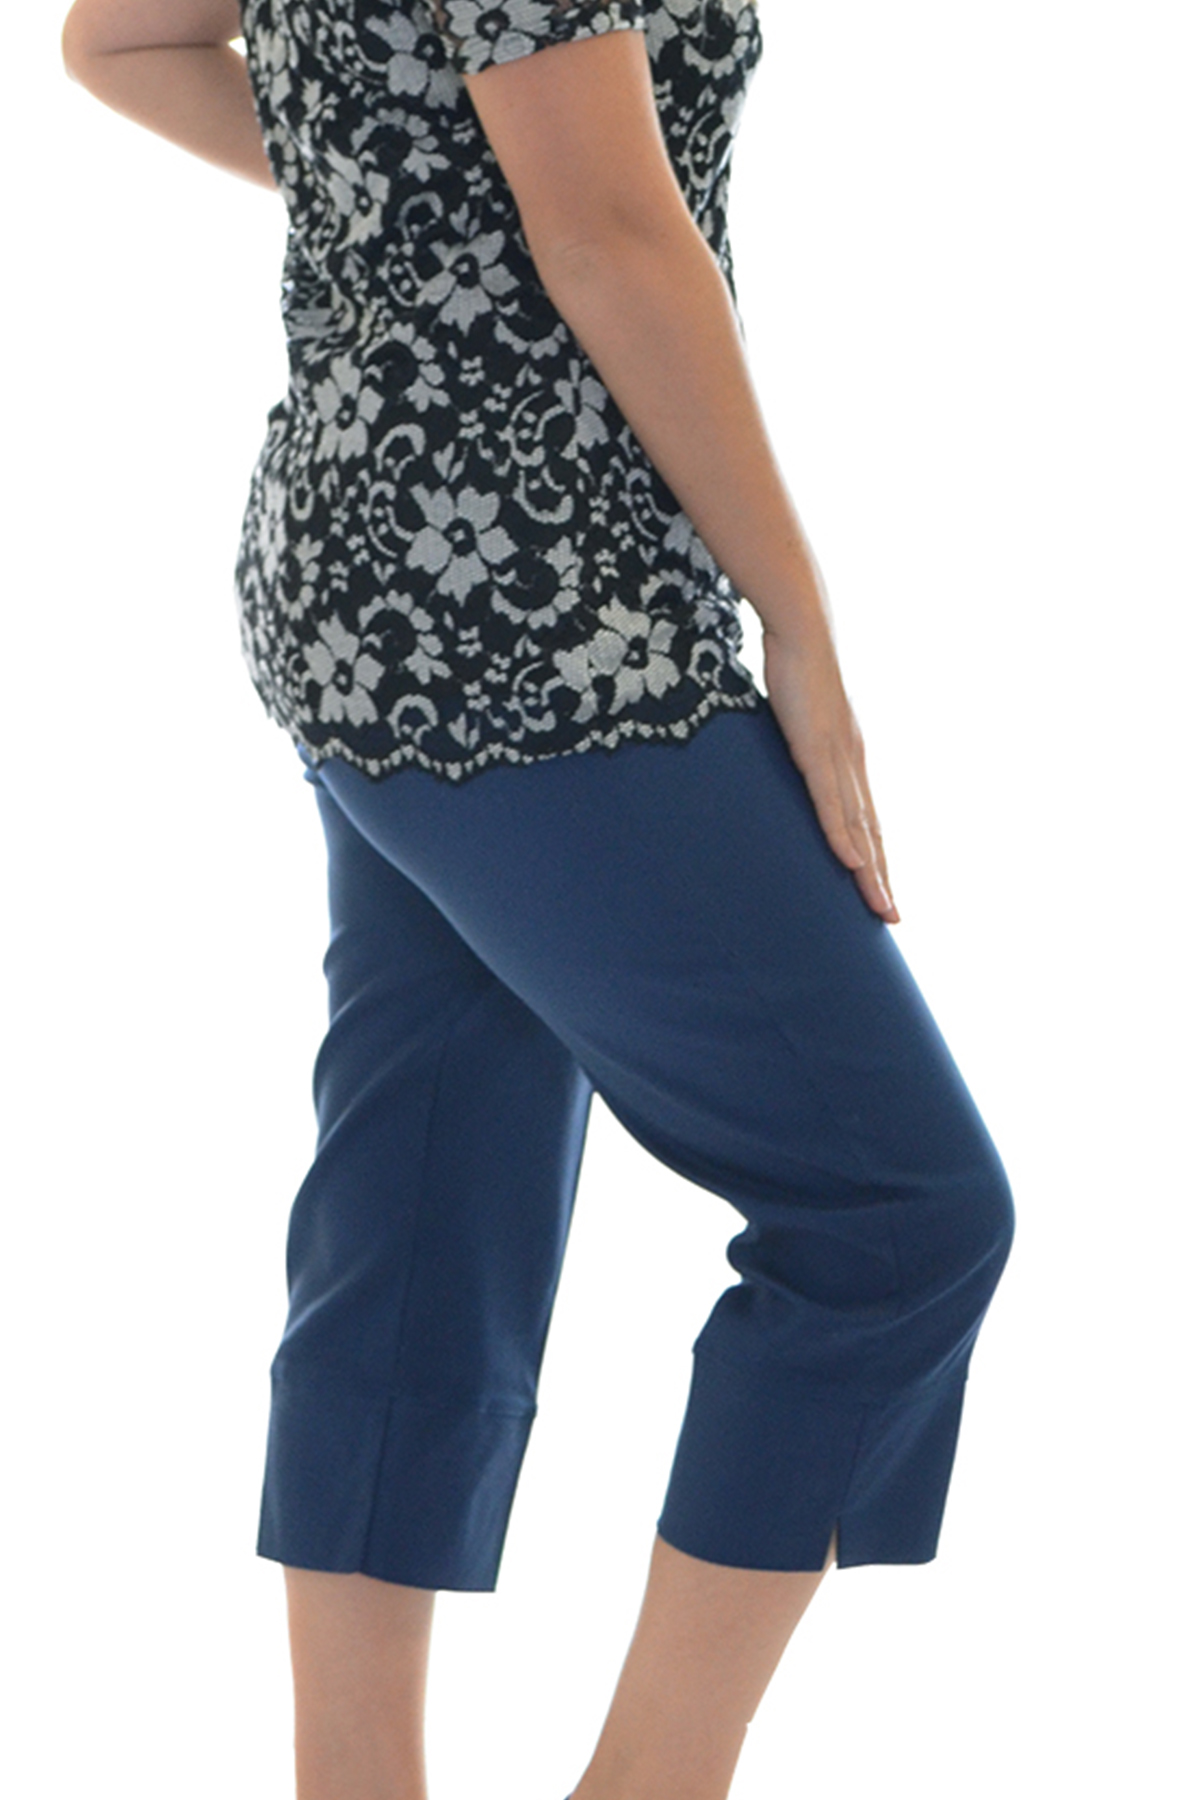 Shop for plus size capri pants online at Target. Free shipping on purchases over $35 and save 5% every day with your Target REDcard.